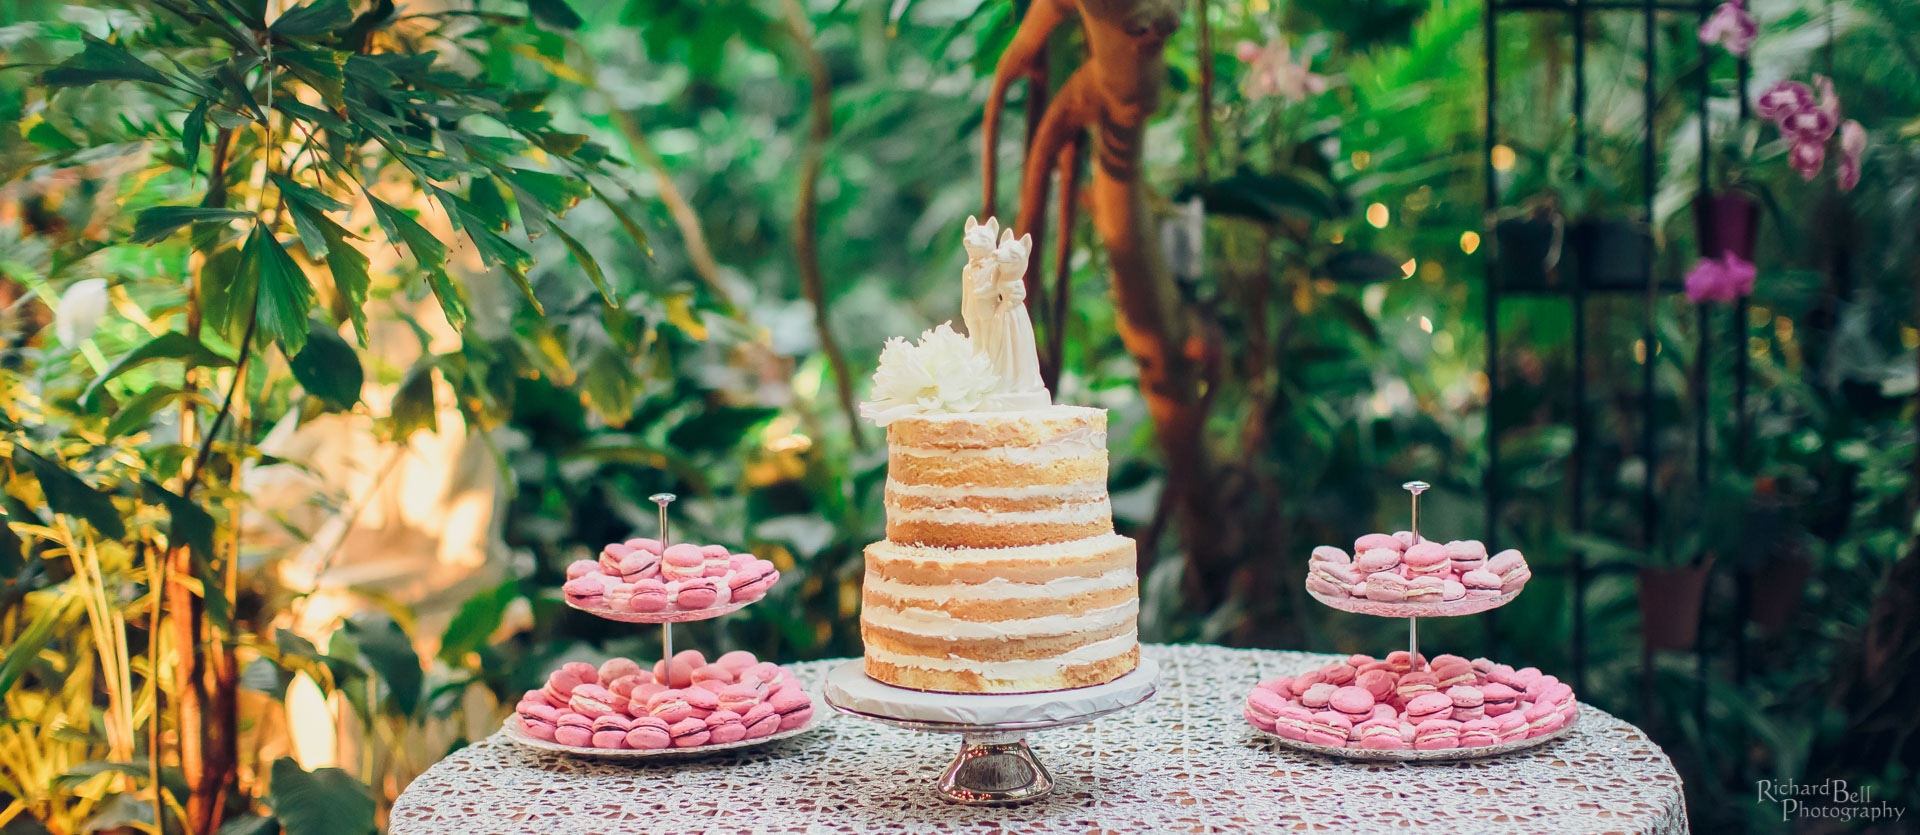 Cake at Conservatory